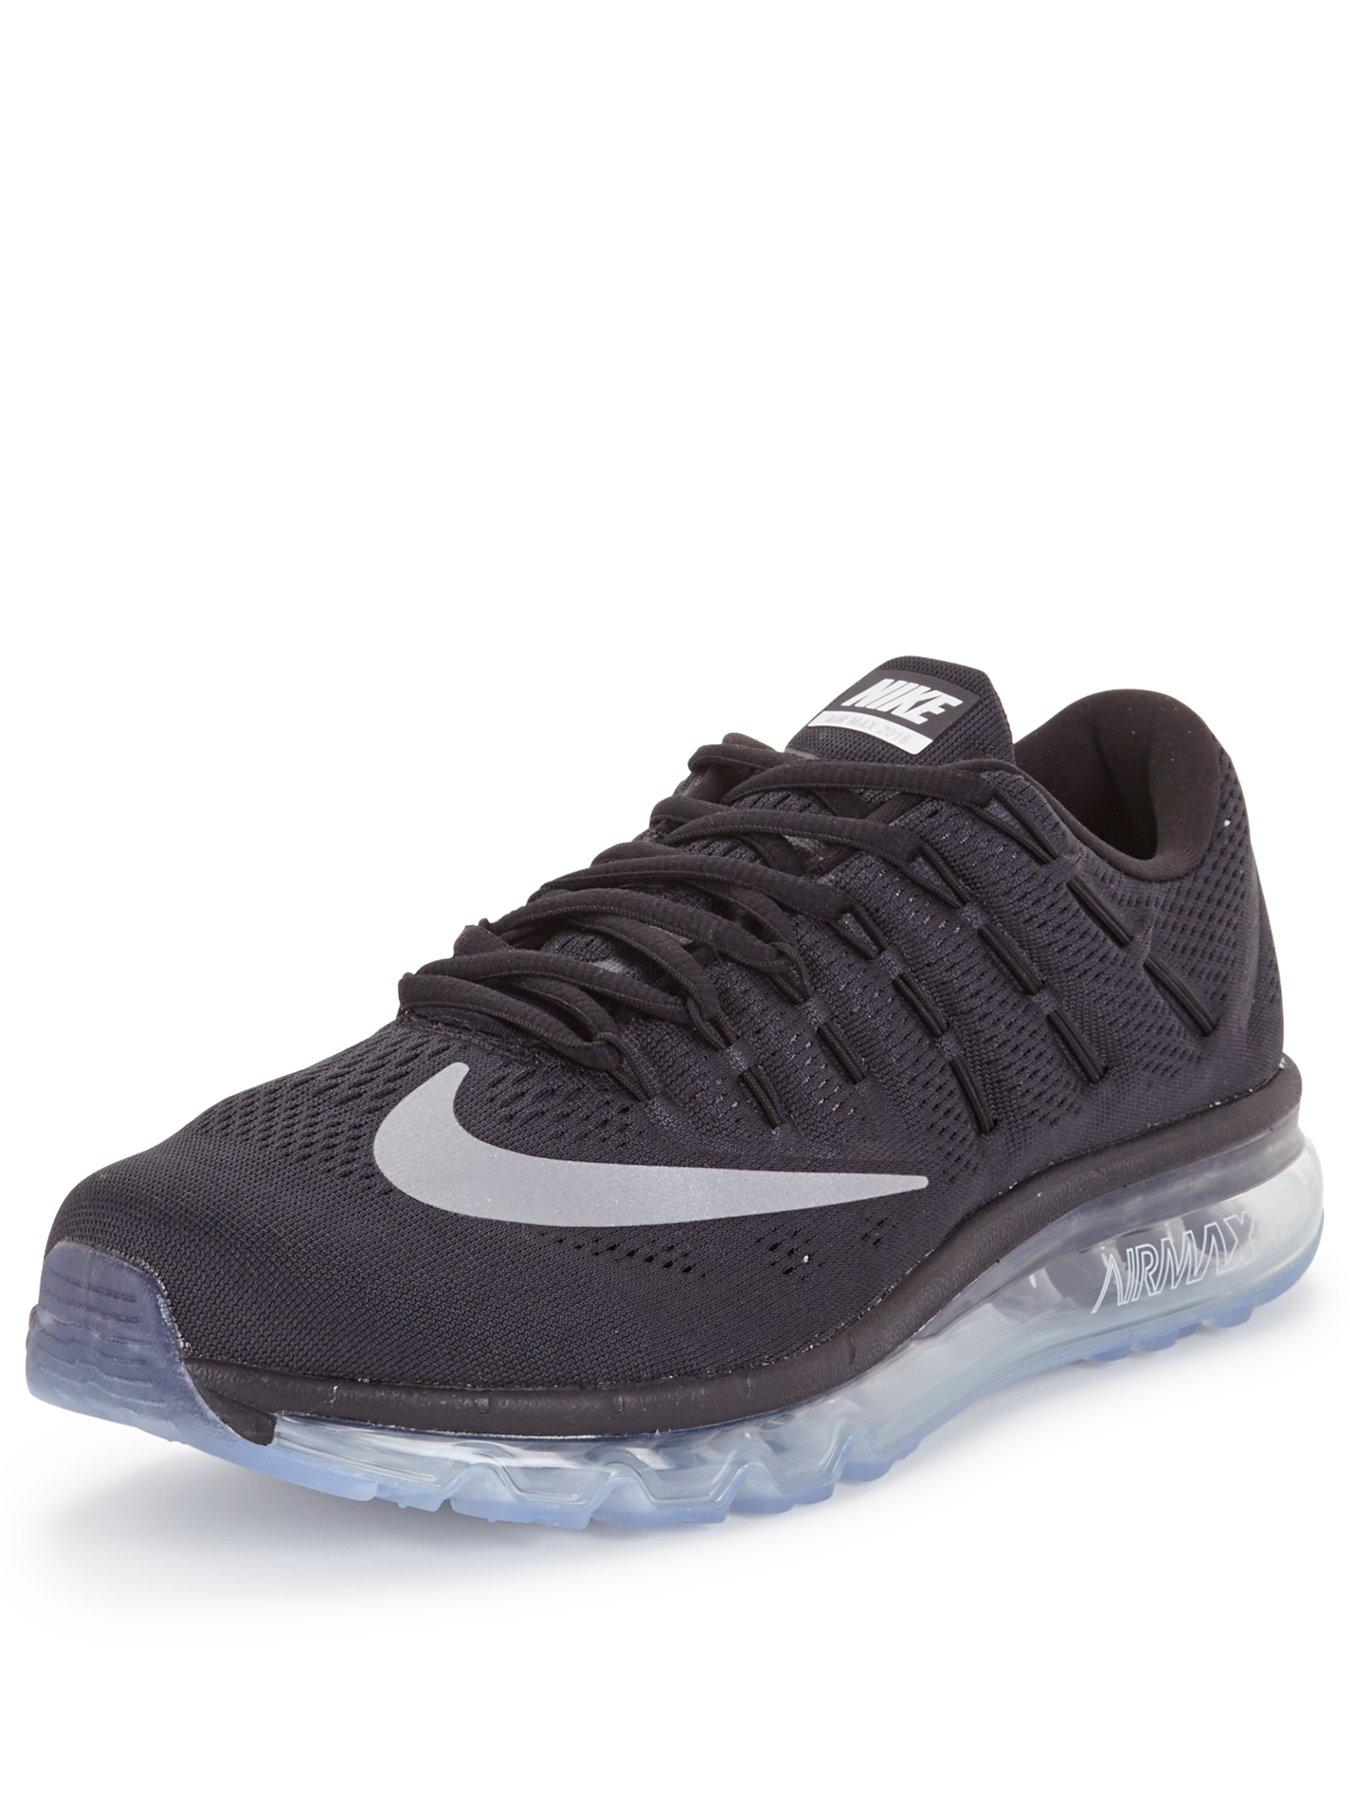 8ff7cabcd1c9e Nike AIR MAX 110 Industry KANTARA Mesh Zoom Running Shoes Size New Release .